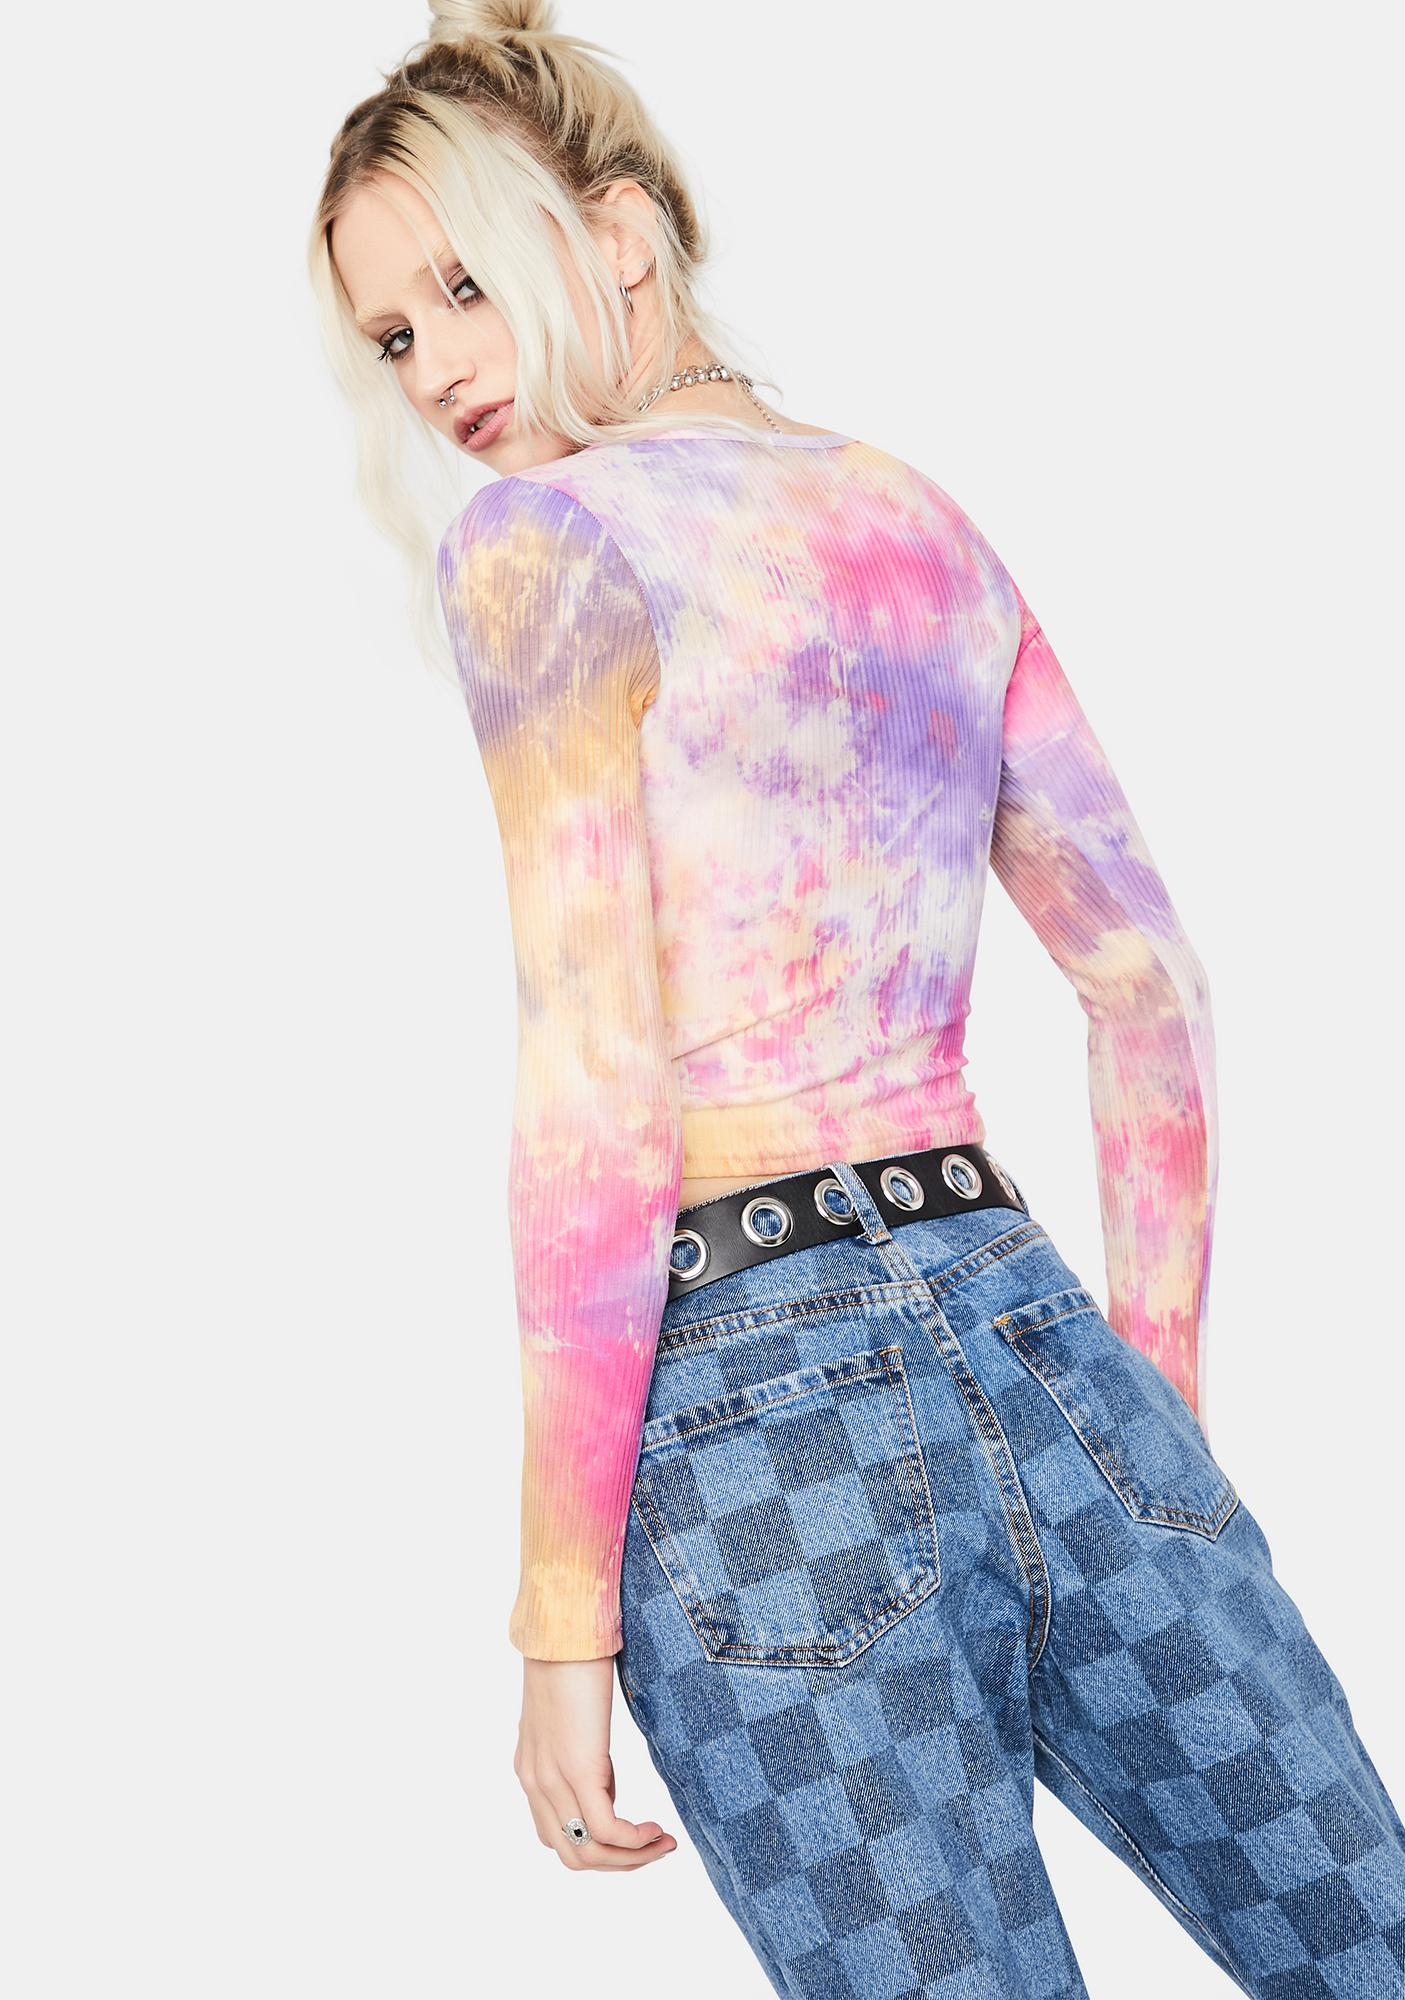 Sunset Want You Back Tie Dye Crop Top